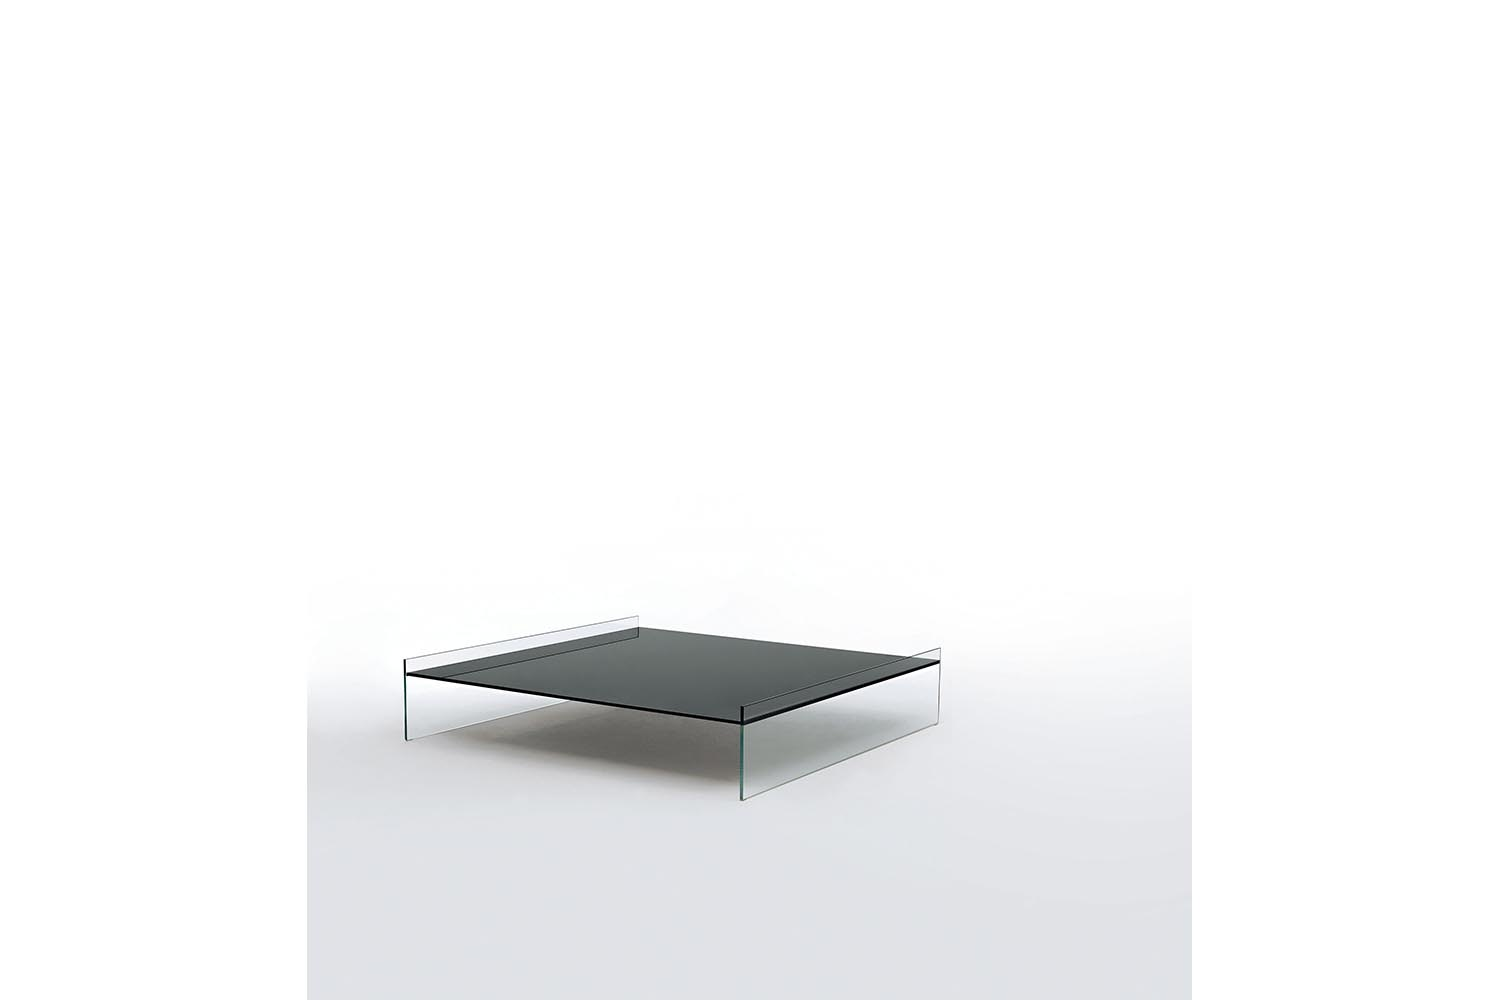 Ponte Coffee Table by Piero Lissoni, Marc Krusin, Carlo Tamborini for Glas Italia